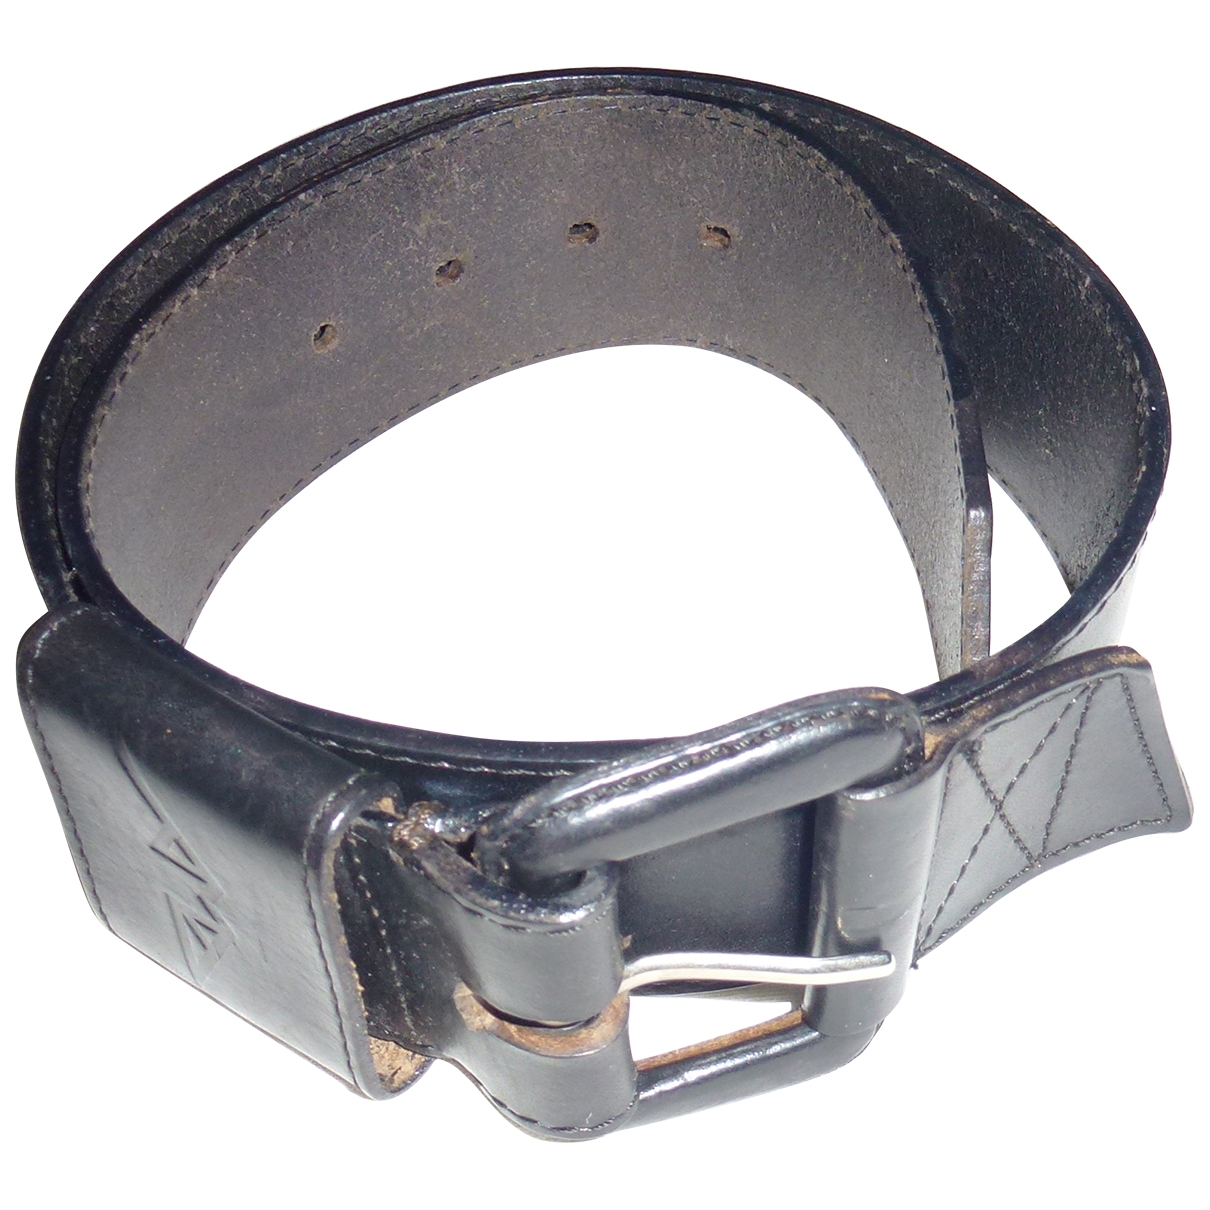 Anne-marie Beretta \N Black Leather belt for Women 85 cm